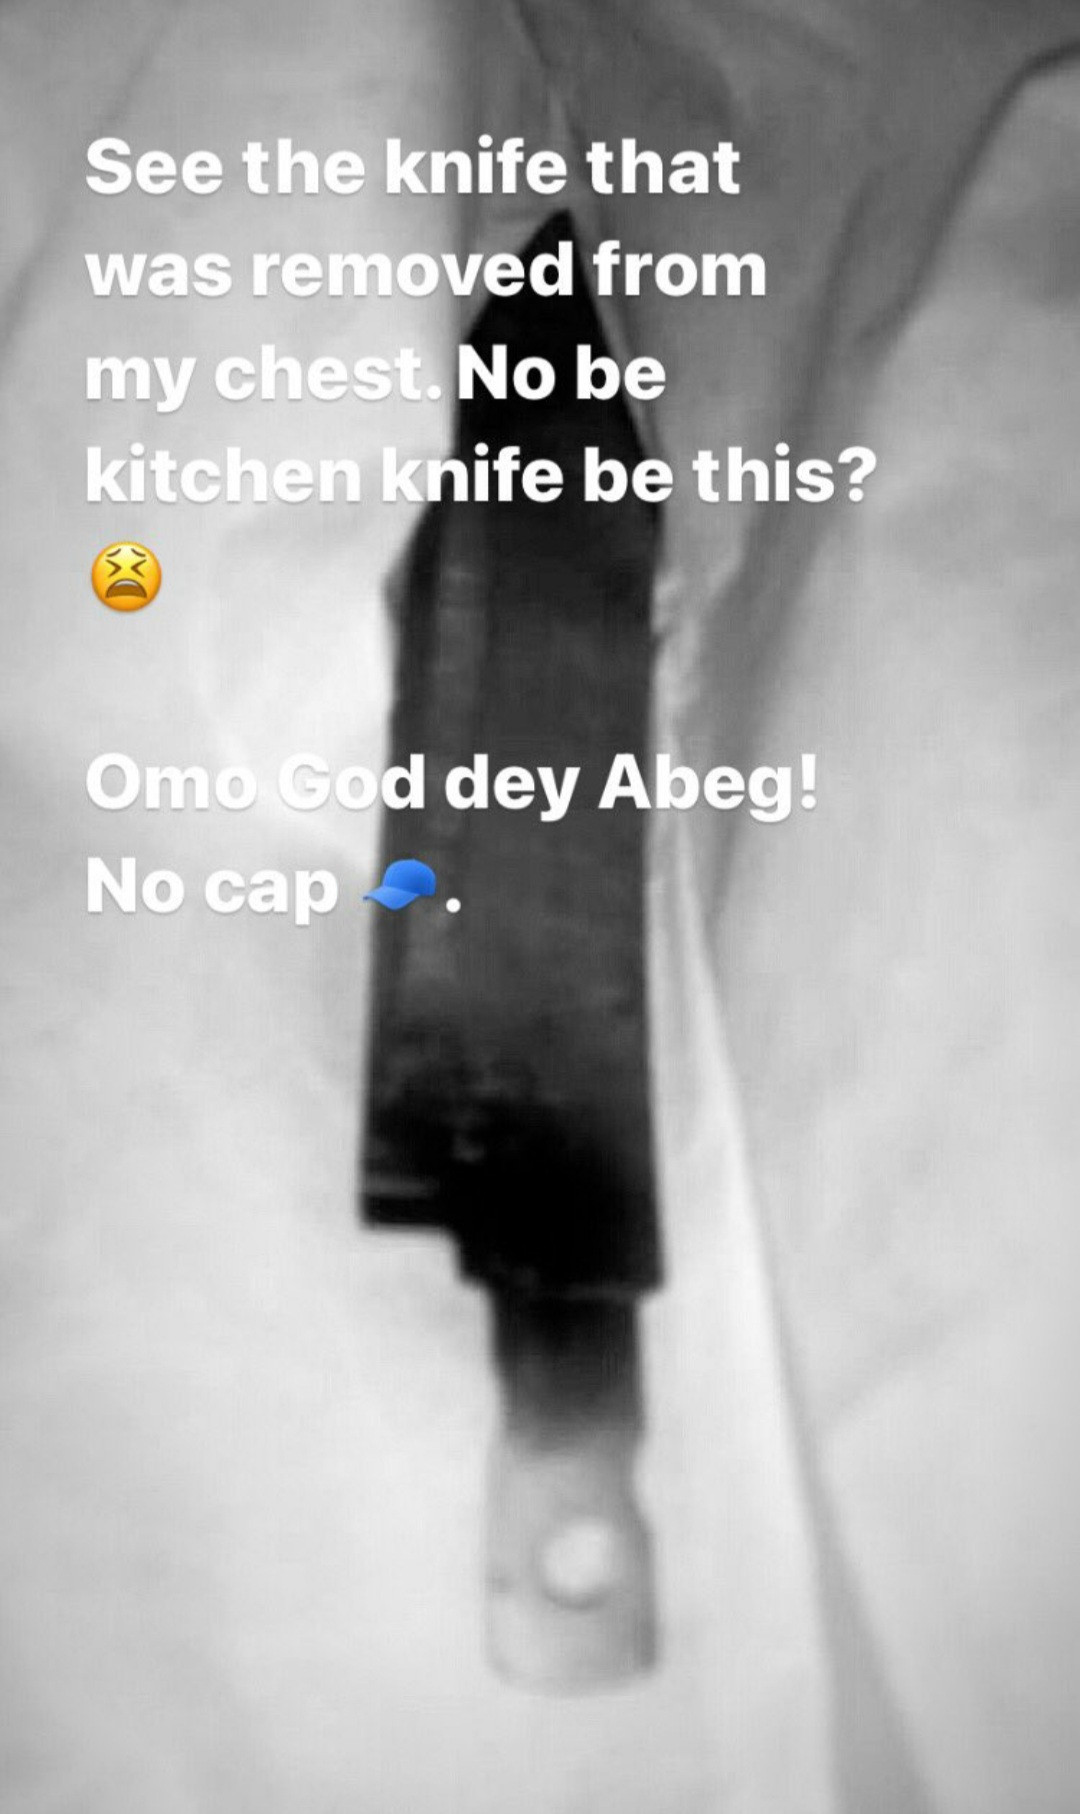 Man narrates how he discovered a knife was forgotten in his body after being stabbed